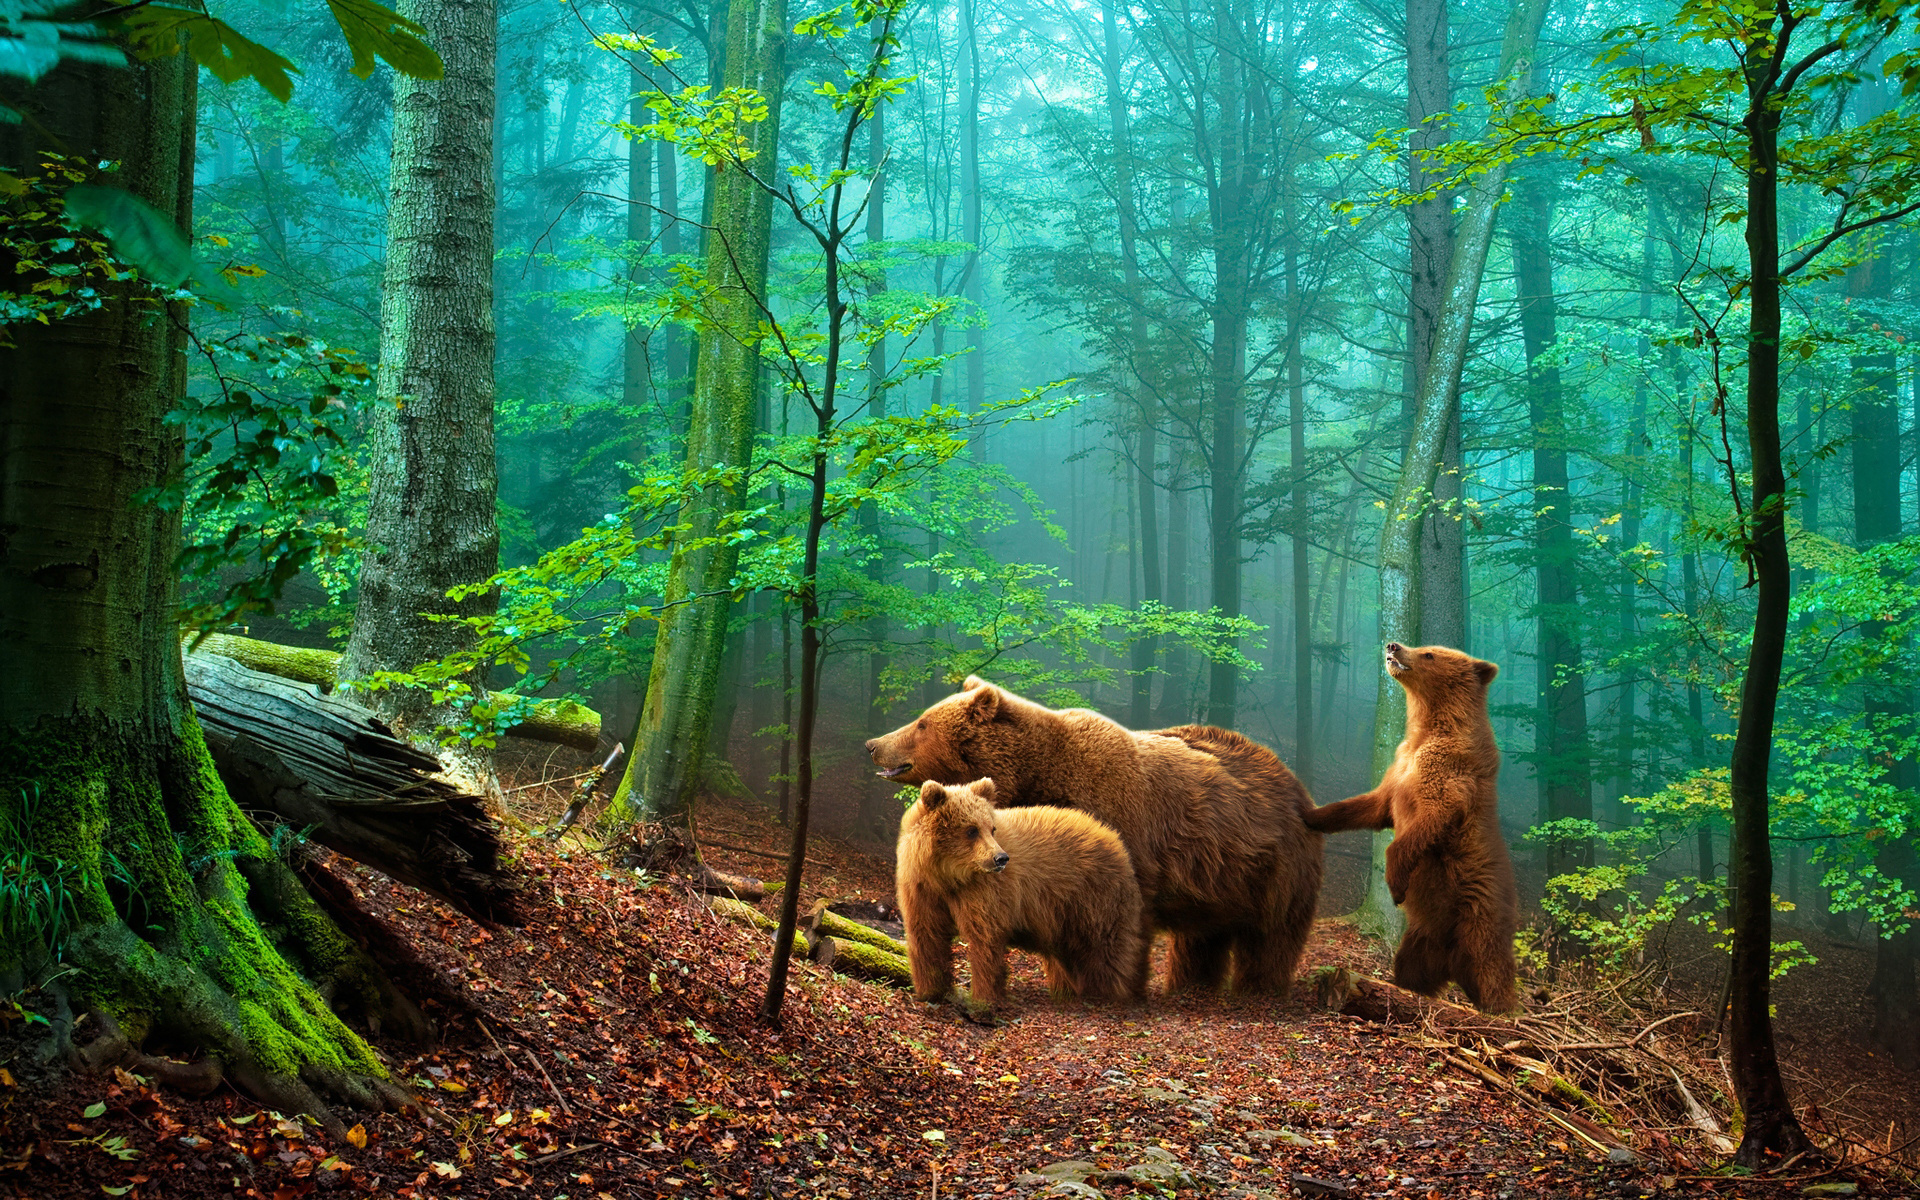 40410 download wallpaper Animals, Bears screensavers and pictures for free